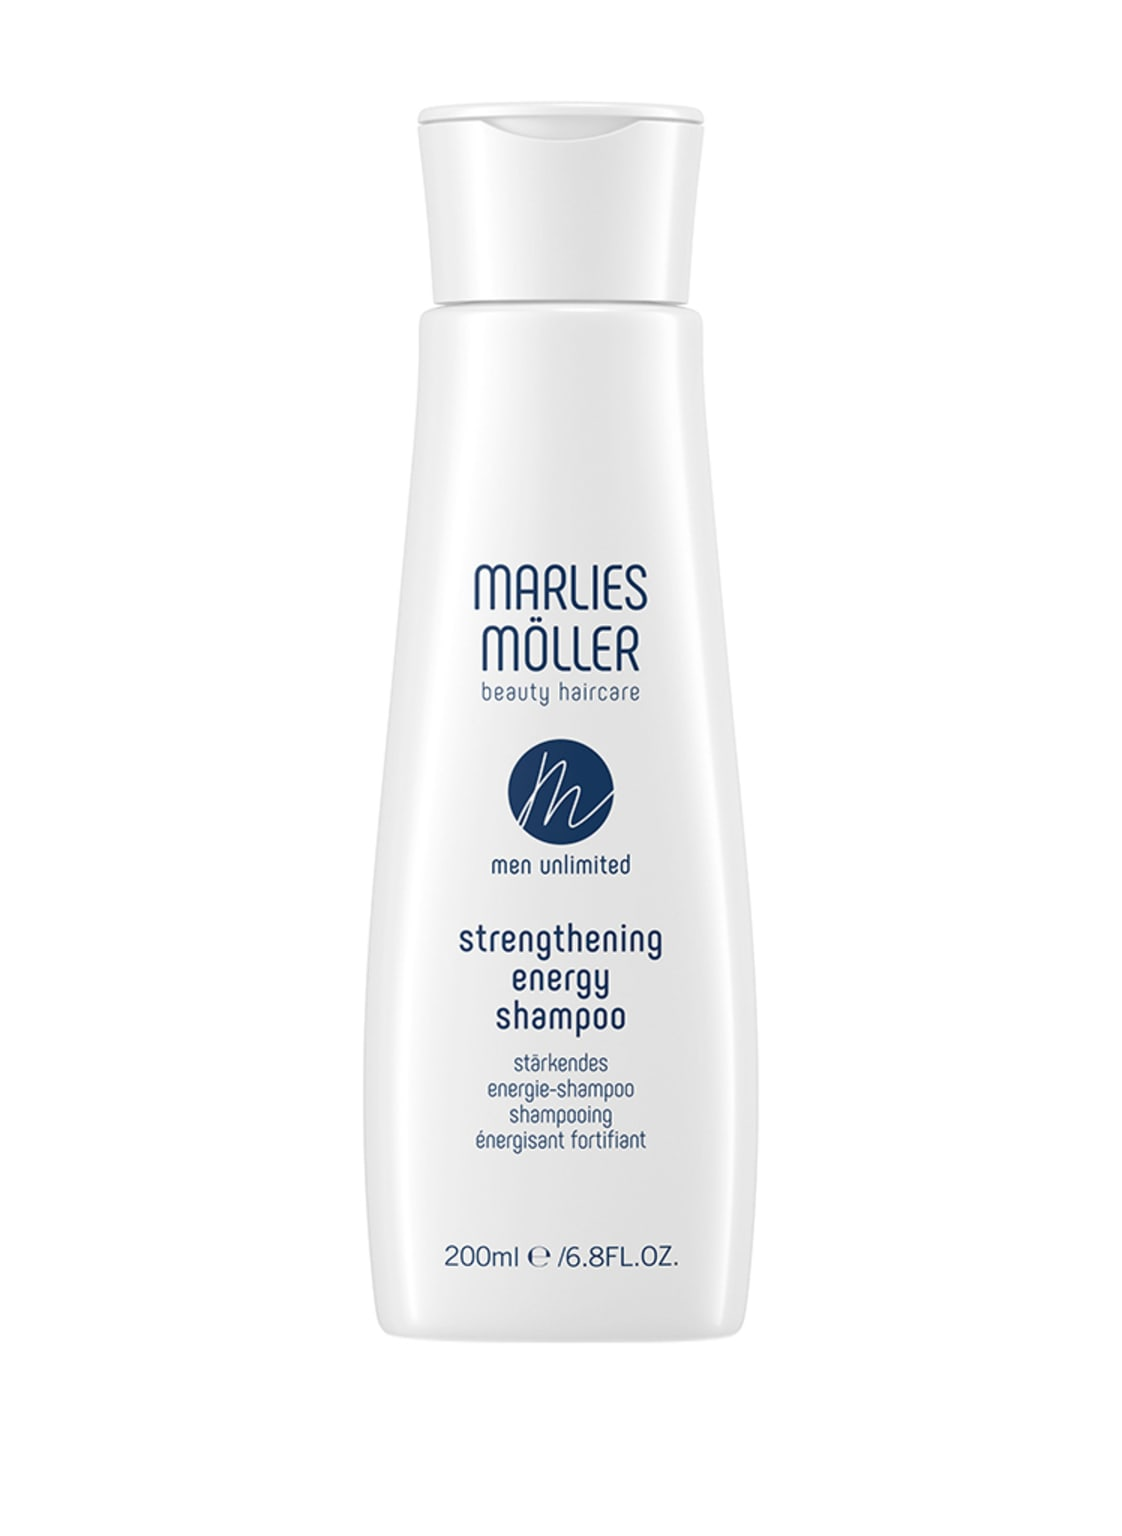 Marlies Möller Men Unlimited Strengthening Energy Shampoo 200 ml von MARLIES MÖLLER